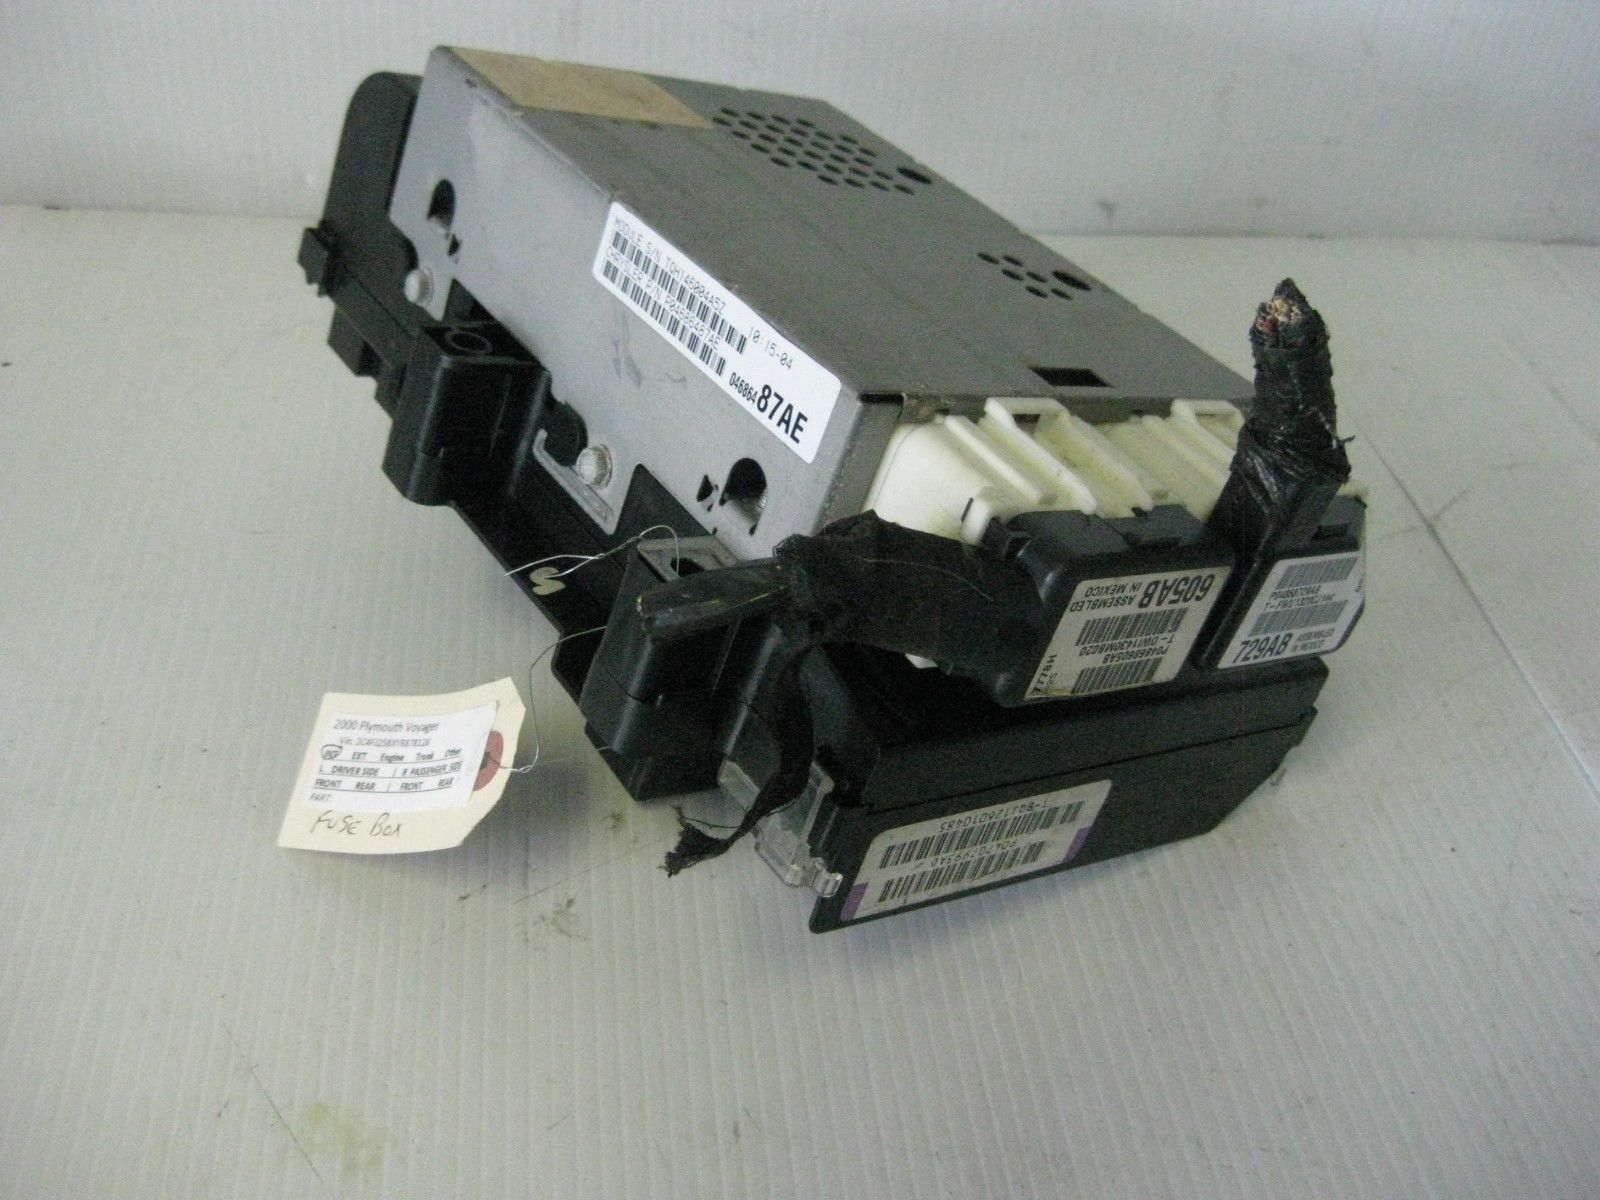 hight resolution of chrysler voyager 2000 engine fuse box w bcm and 35 similar items s l1600